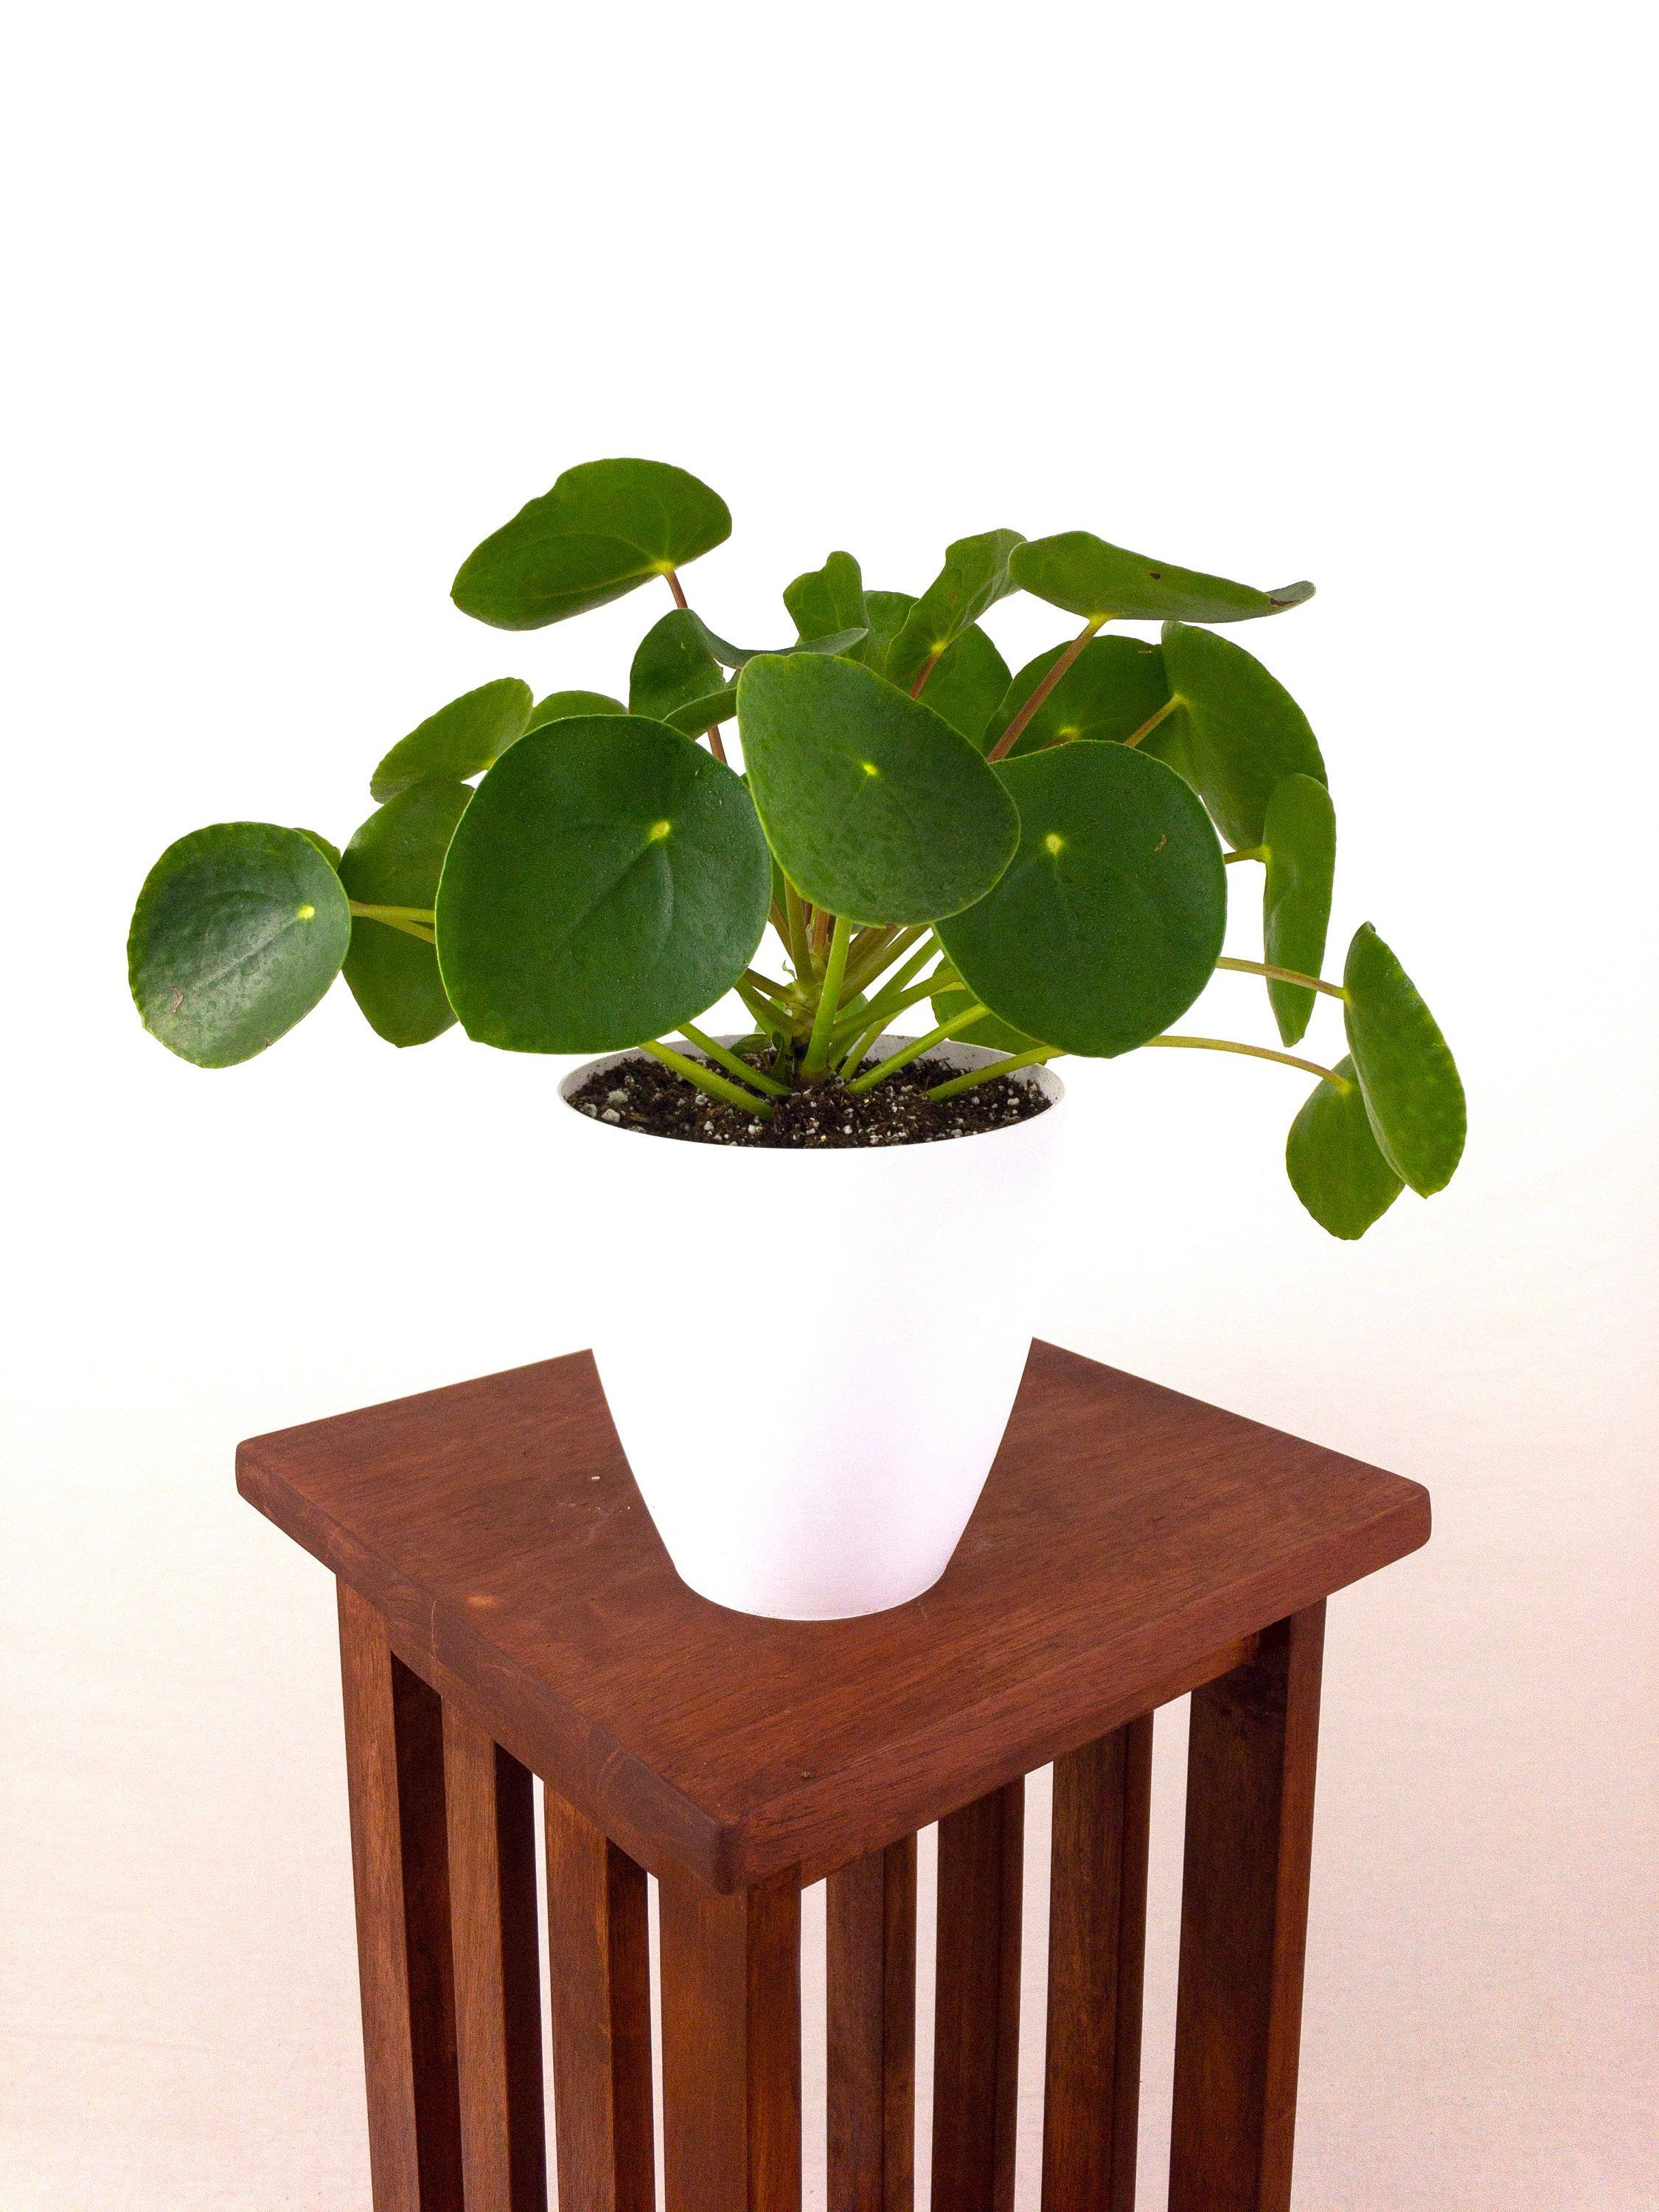 RARE Large Pilea Peperomioides (Chinese Money Plant) Live Houseplant  Easy Care Indoor Plant, Home Decor, Office, Gardening, minimalistic is part of Indoor garden Minimalist - This Pilea Peperomioides, also known as the Chinese Money Plant, is one of the most popular, yet rare and hardtofind indoor pants  They are often called the  friendship plant  because, due to their low availability, most people have better luck finding them at plant swaps or getting a cutting from a friend than in traditional nurseries or garden centers   But one all is you need to decorate a whole room or entryway! Its bright green pancakeshaped leaves and central upright stem, surrounded on all sides by these characteristic perky leaves, provide an elegant and welcoming burst of color against white walls  Best of all, this plant is rated as nontoxic by the ASPCA and therefore safe to keep around pets and small children   CARE Pilea peperomioides is a surprisingly adaptable and easy to care for plant  All it needs is bright, indirect light and consistent waterings  If it receives light from a single nearby window, I would also recommend rotating it a few times per week to keep its round shape and the leaves growing evenly on all directions   The plant will also reward you with new growth regularly, producing  pups   offshoots that can be cut away and propagated as separate plants to keep as extra greenery, or to continue to the tradition and pass on to a friend   SHIPMENT This large Pilea in a white, custommade 6  planter  3D printed inhouse with sustainable, plantbased materials   Photograph above represents plants in the nursery  Appearance of delivered plant may vary depending on season  NOTES Rare plants like this Pilea require special preshipping preparation, and usually ship within 57 days   There are certain risks associated with shipping live plants  While we take all precautions to make sure the plants arrive in good conditions, some transit shock is normal  To alleviate this shock, water your plant lightly upon arrival and wait at least 1 full week before transplanting it to a new container  In the event that the plant is severely damaged during transit, please contact us within 48 hours with a description of the condition of your plant upon arrival and a picture, and we will gladly mail a replacement   WINTER SHIPMENTS Buyers shipping to destinations with temperatures under 40F must also purchase a heat pack